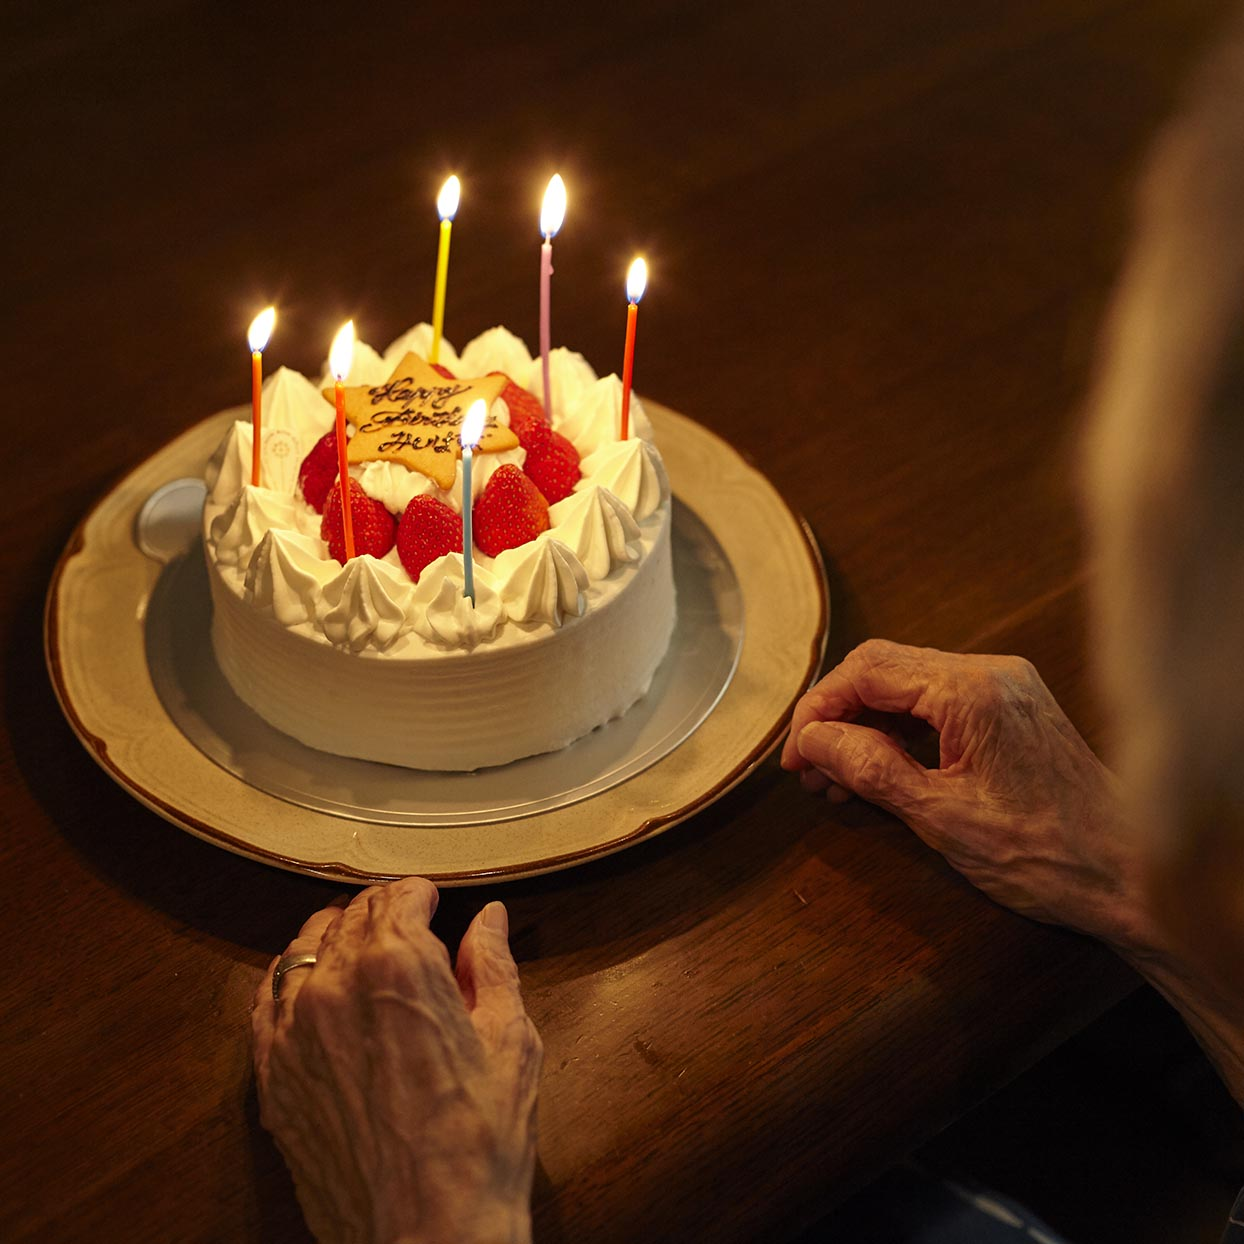 107-Year-Old Woman Reveals Her Secret to a Long Life:  I Never Got Married